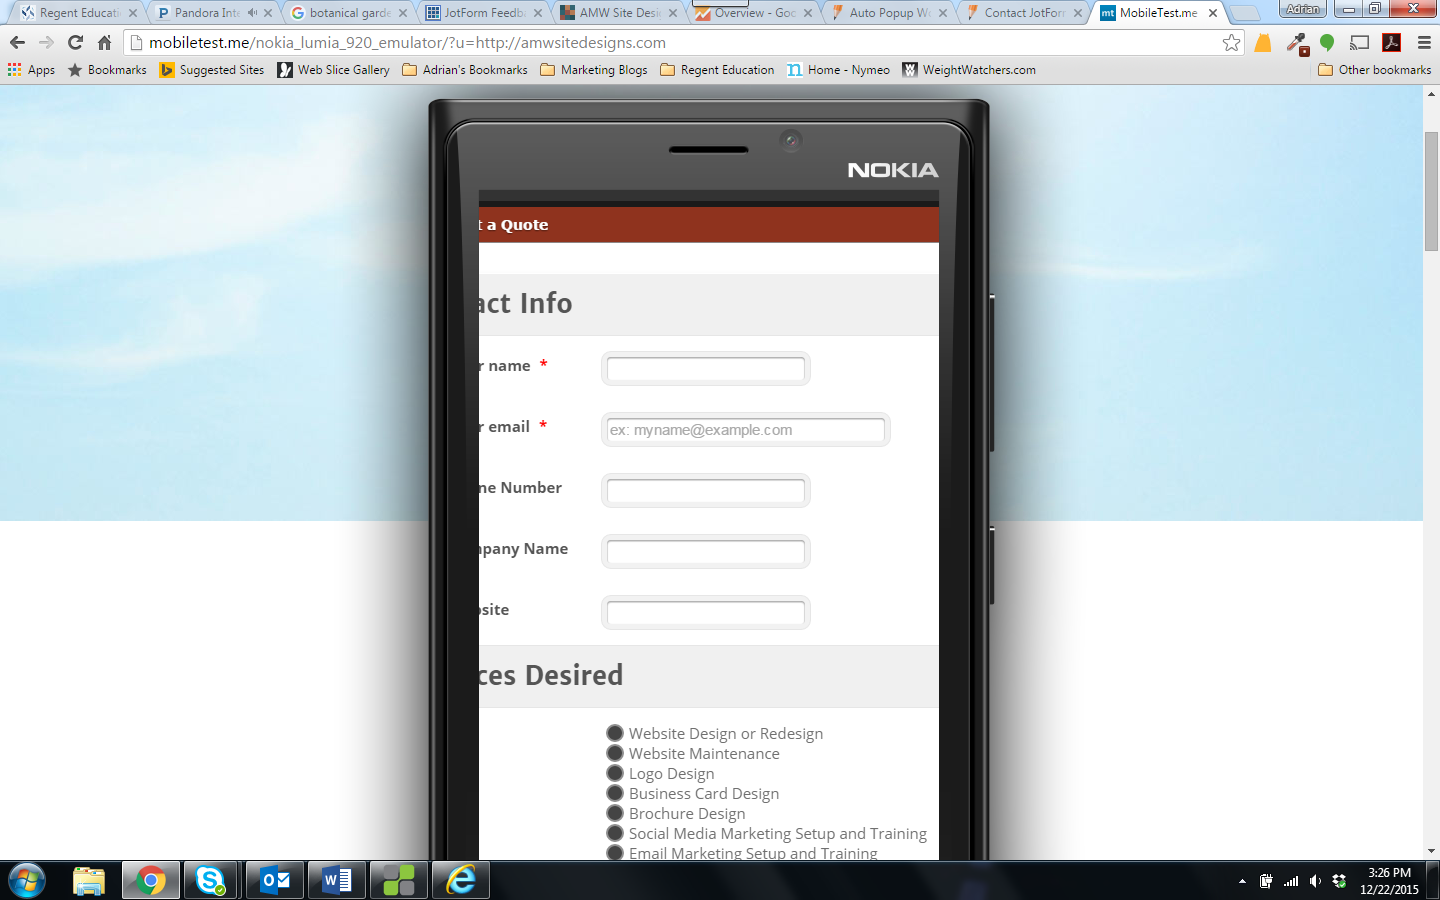 JotForm Feedback Button How to Disable on Mobile